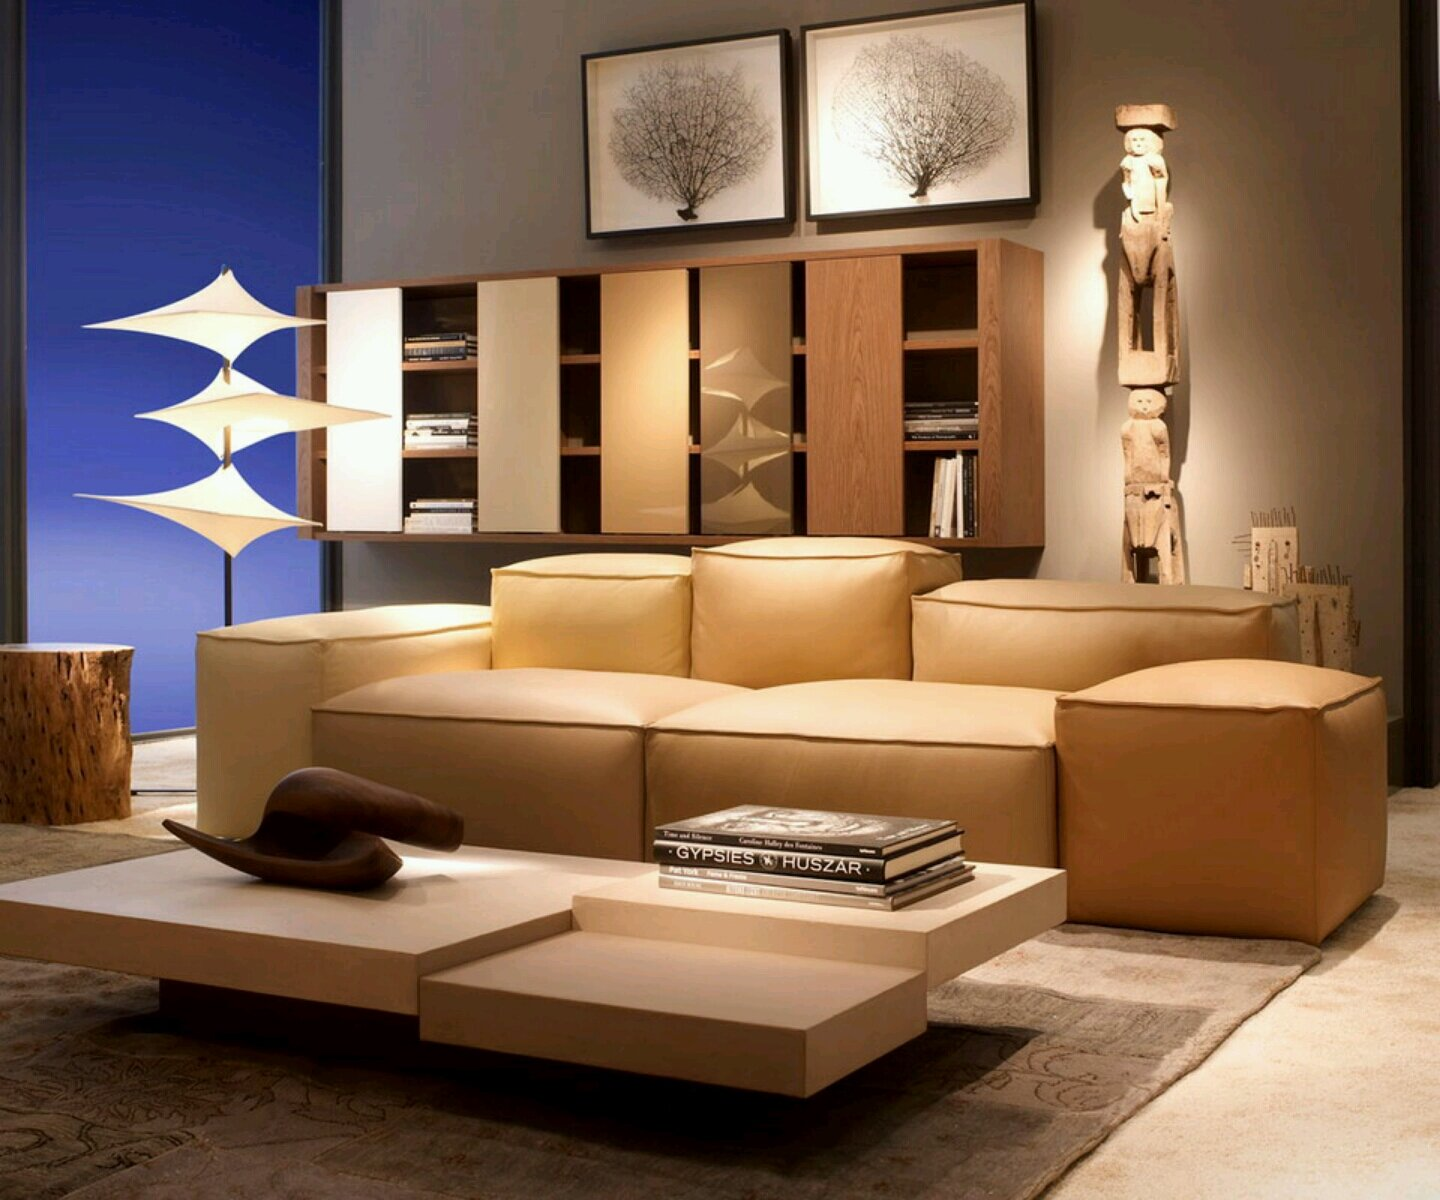 15 really beautiful sofa designs and ideas for Design of household furniture